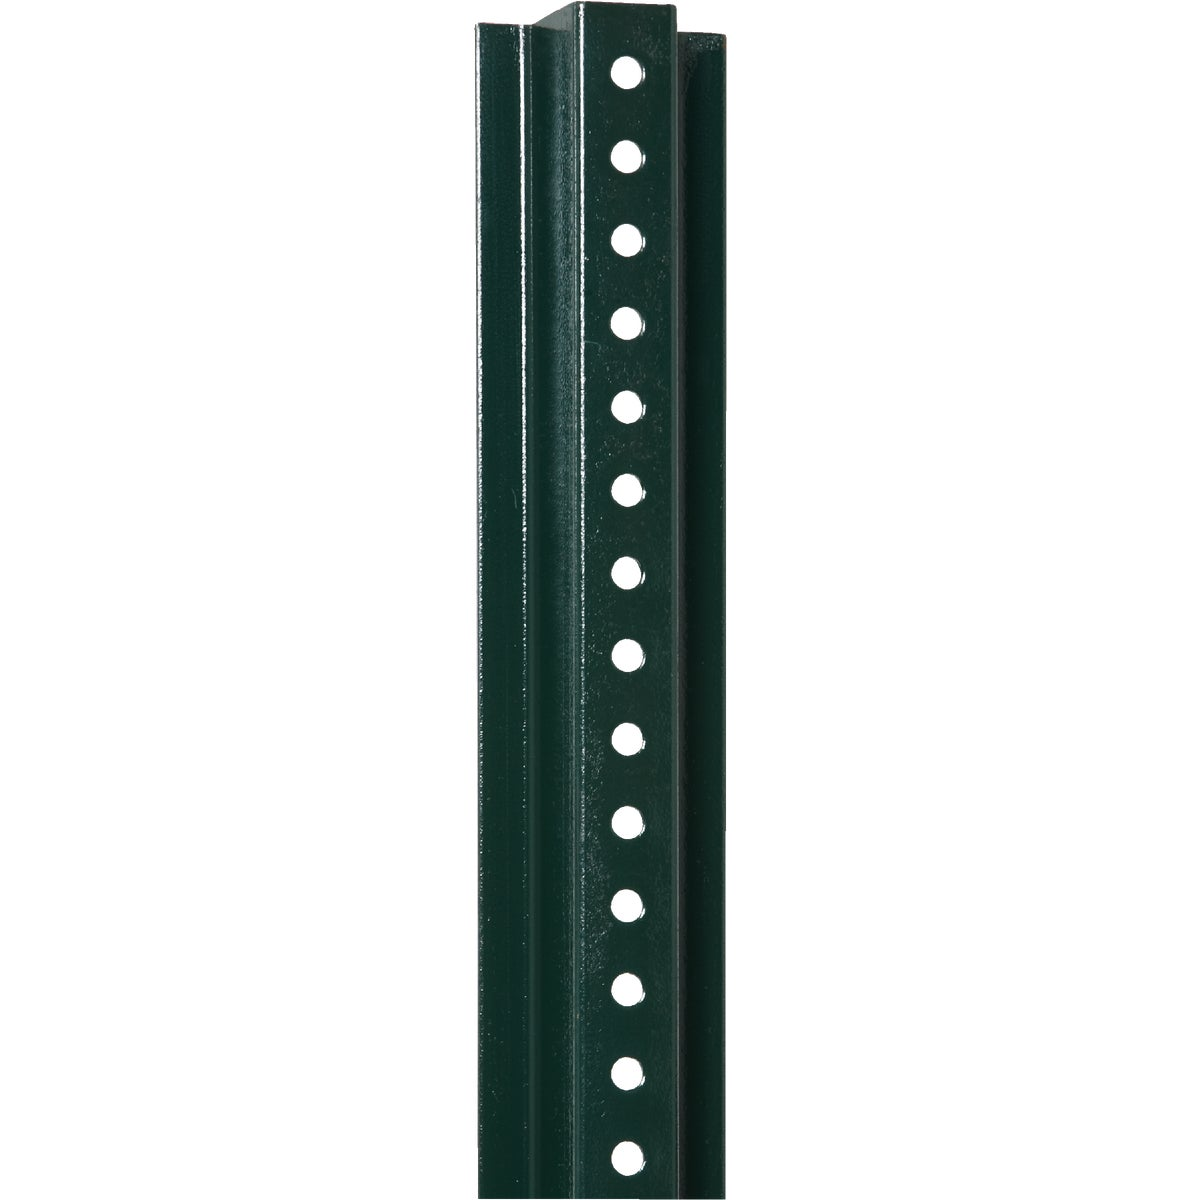 8' GRN SIGN POST - 8' by Chicago Heights